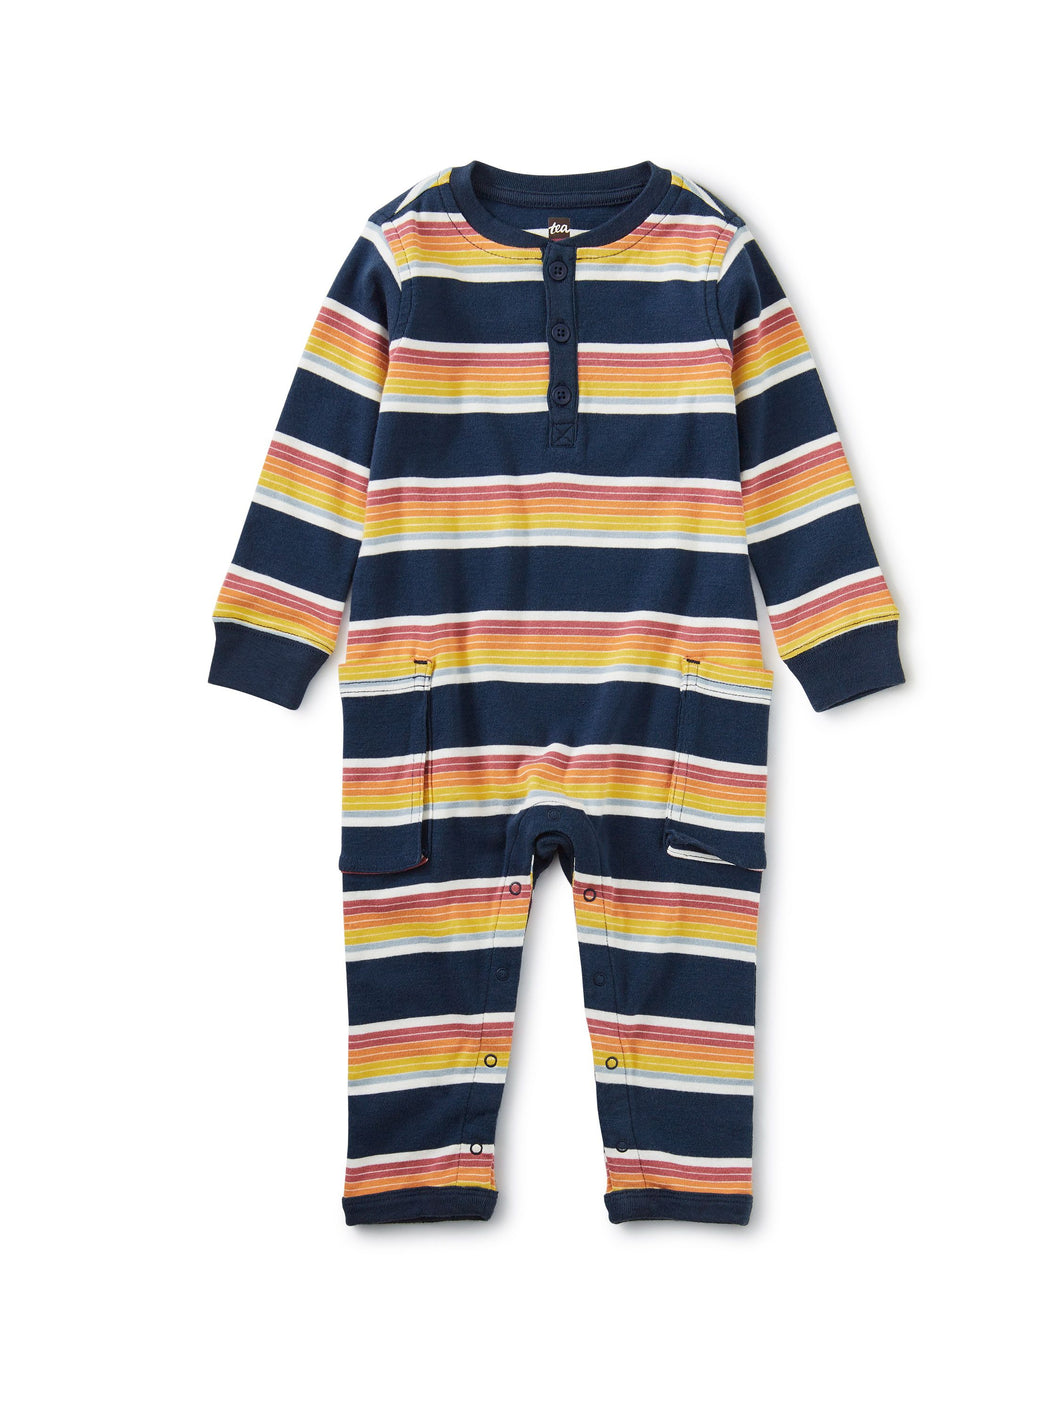 Tea Collection Striped Cargo Romper - Whale Blue